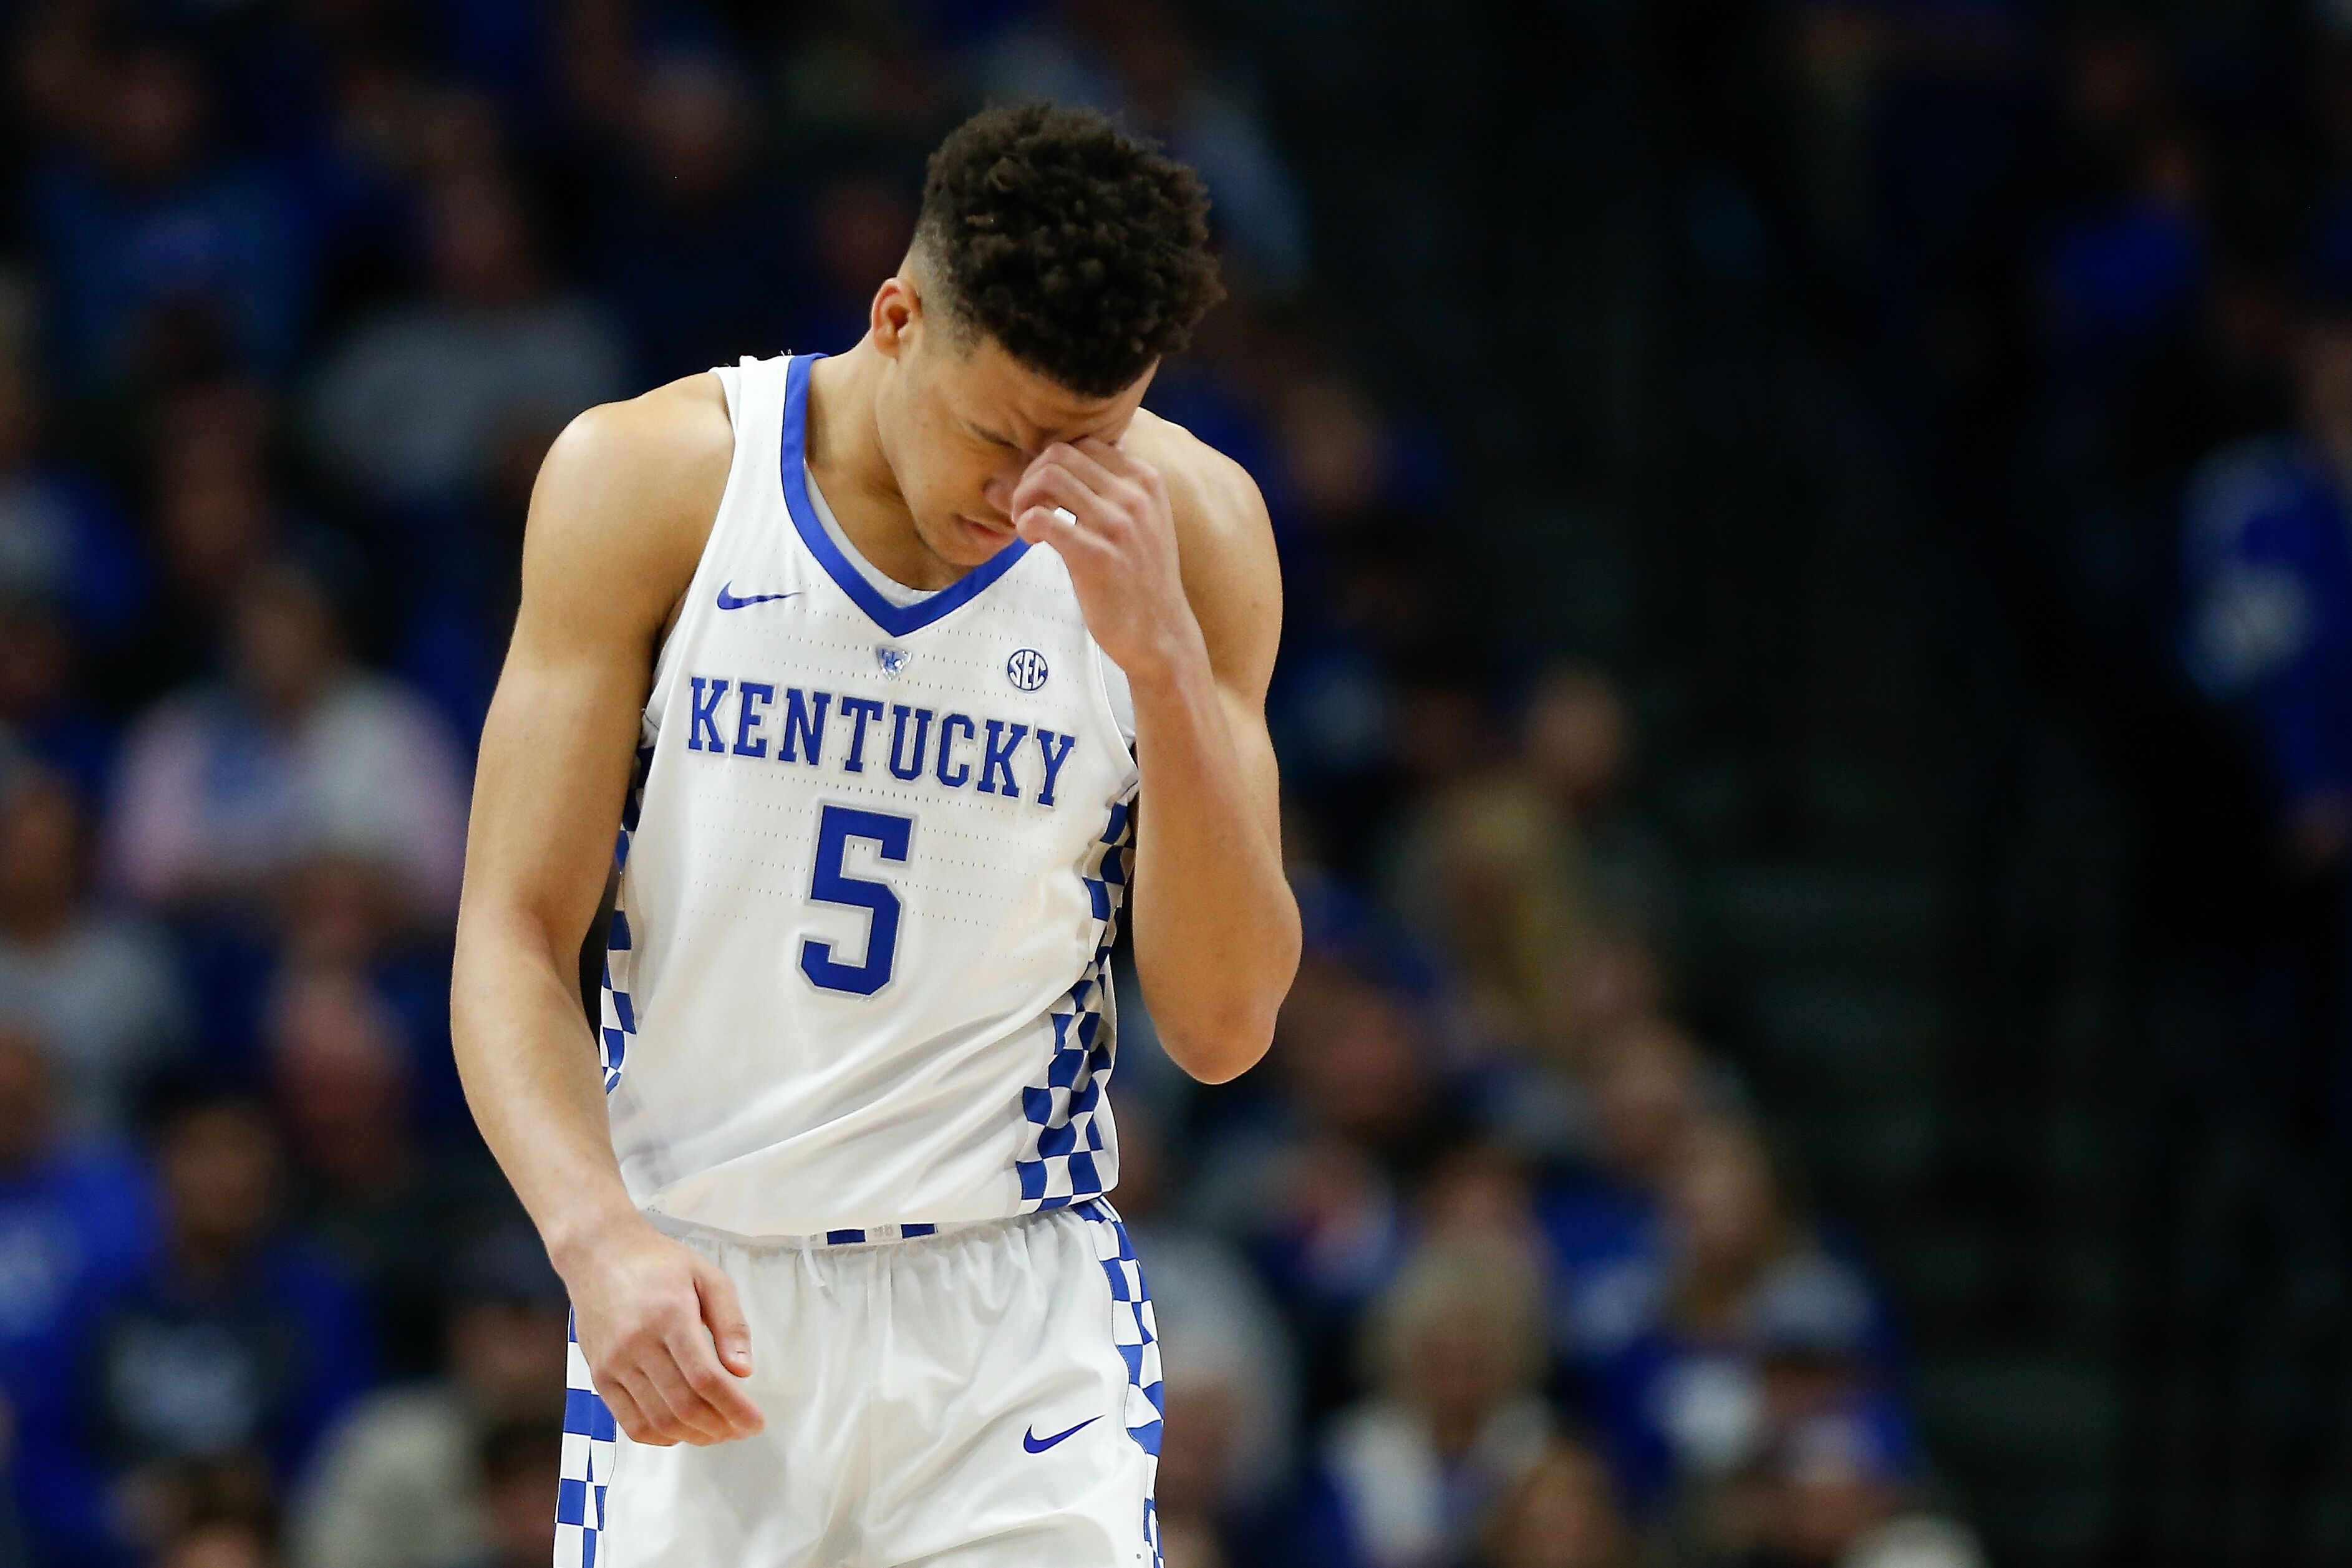 Kentucky Basketball: What's Wrong With The Wildcats?